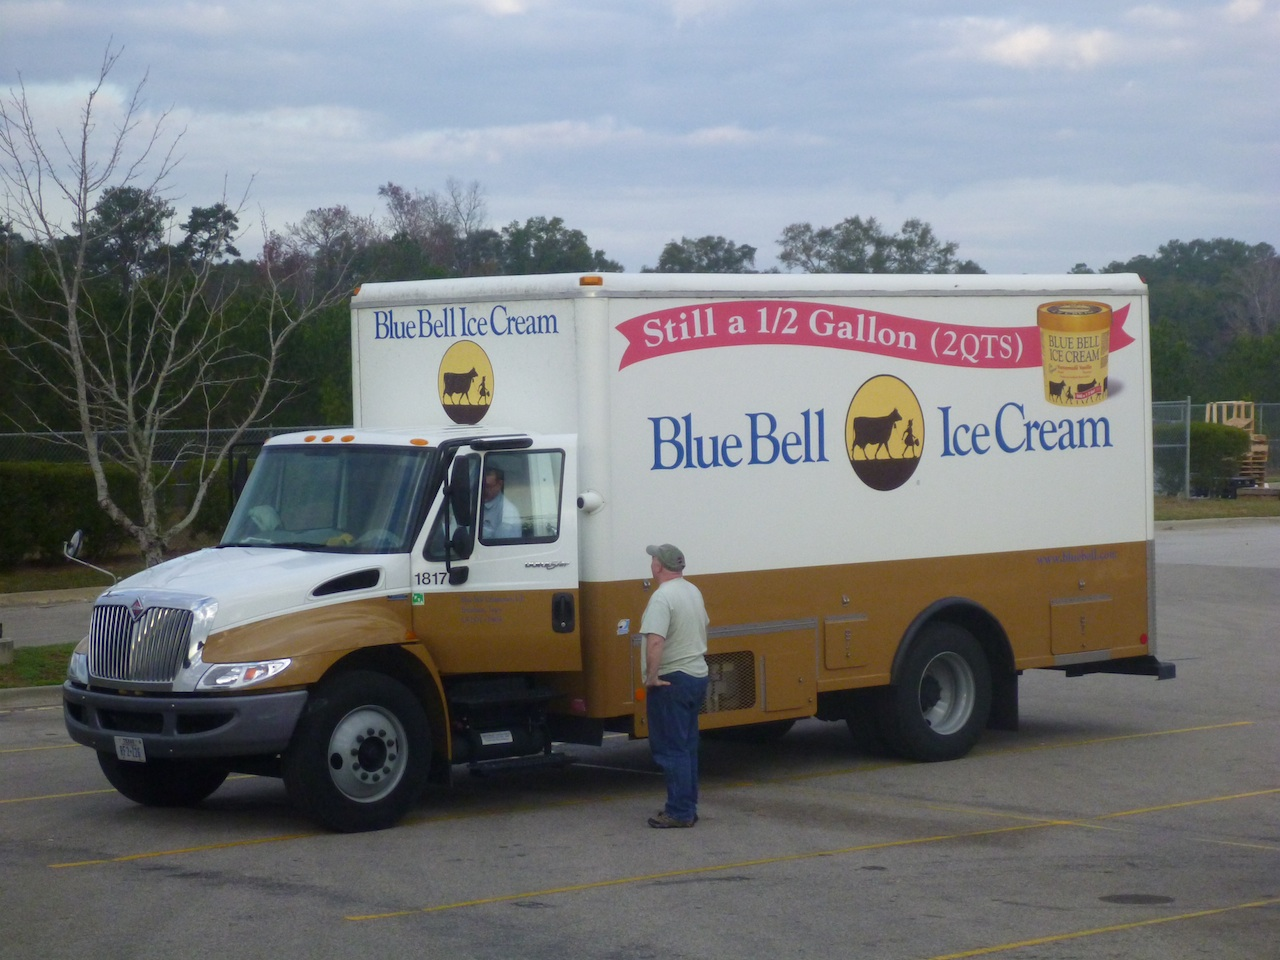 David Talking To The Blue Bell Ice Cream Truck Guy.